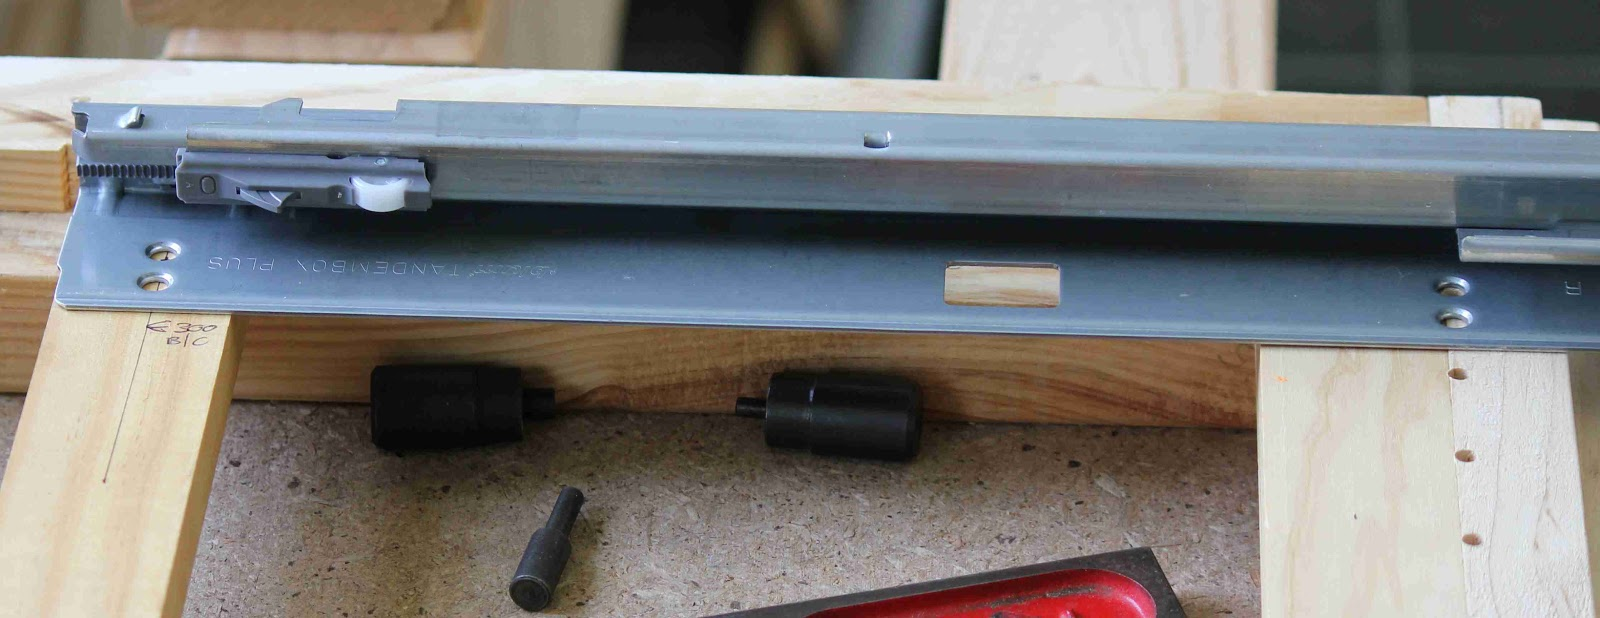 blog de VK5HSE: IKEA mounting hole dimensions - In case you need to